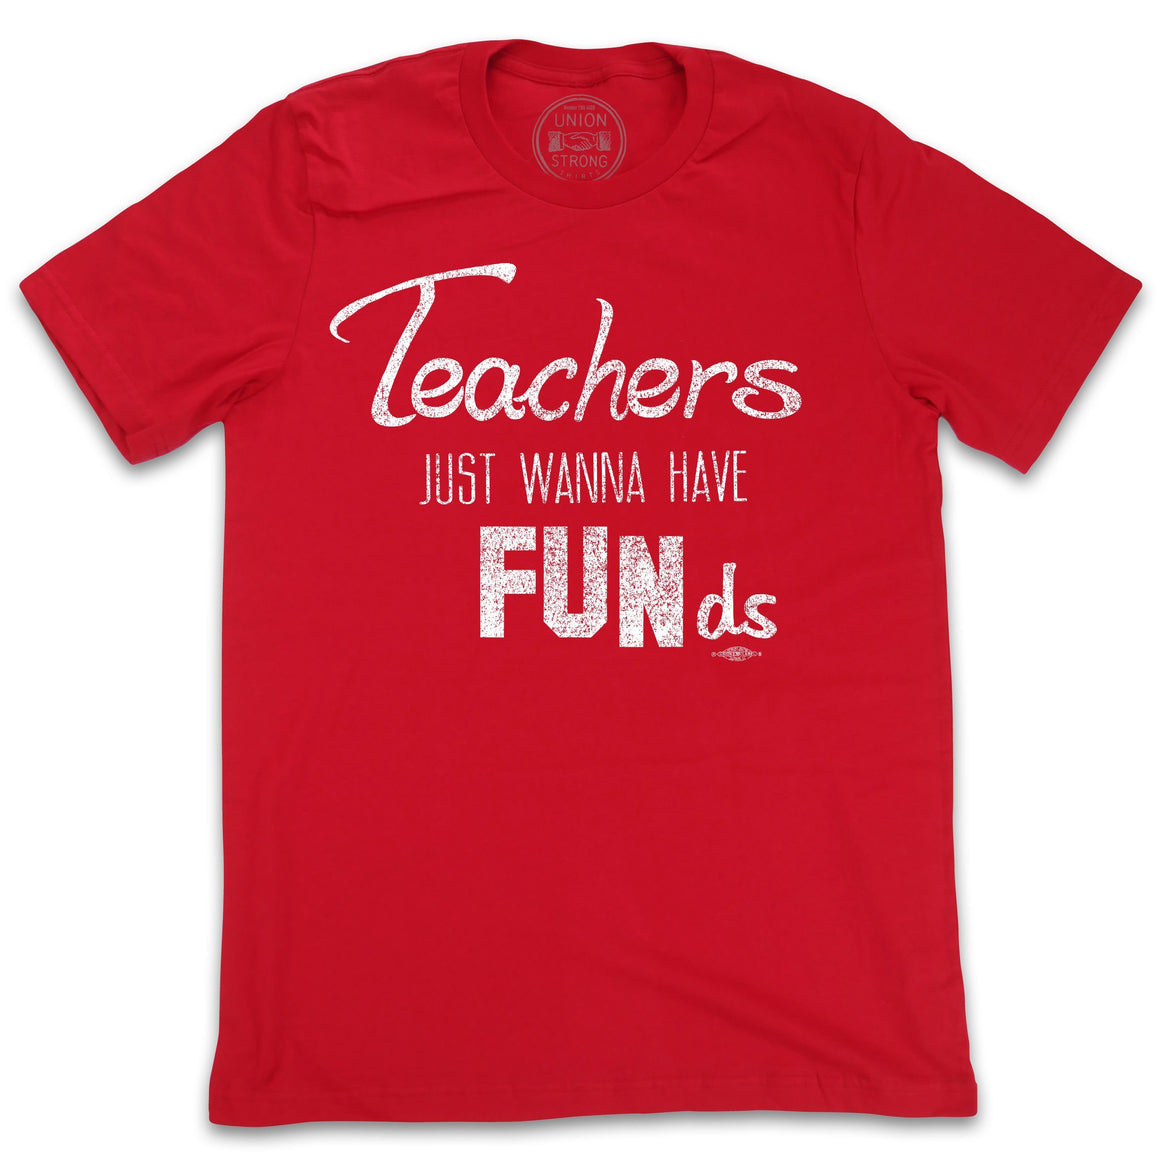 Teachers Just Wanna Have Funds Shirts unionstrongshirts